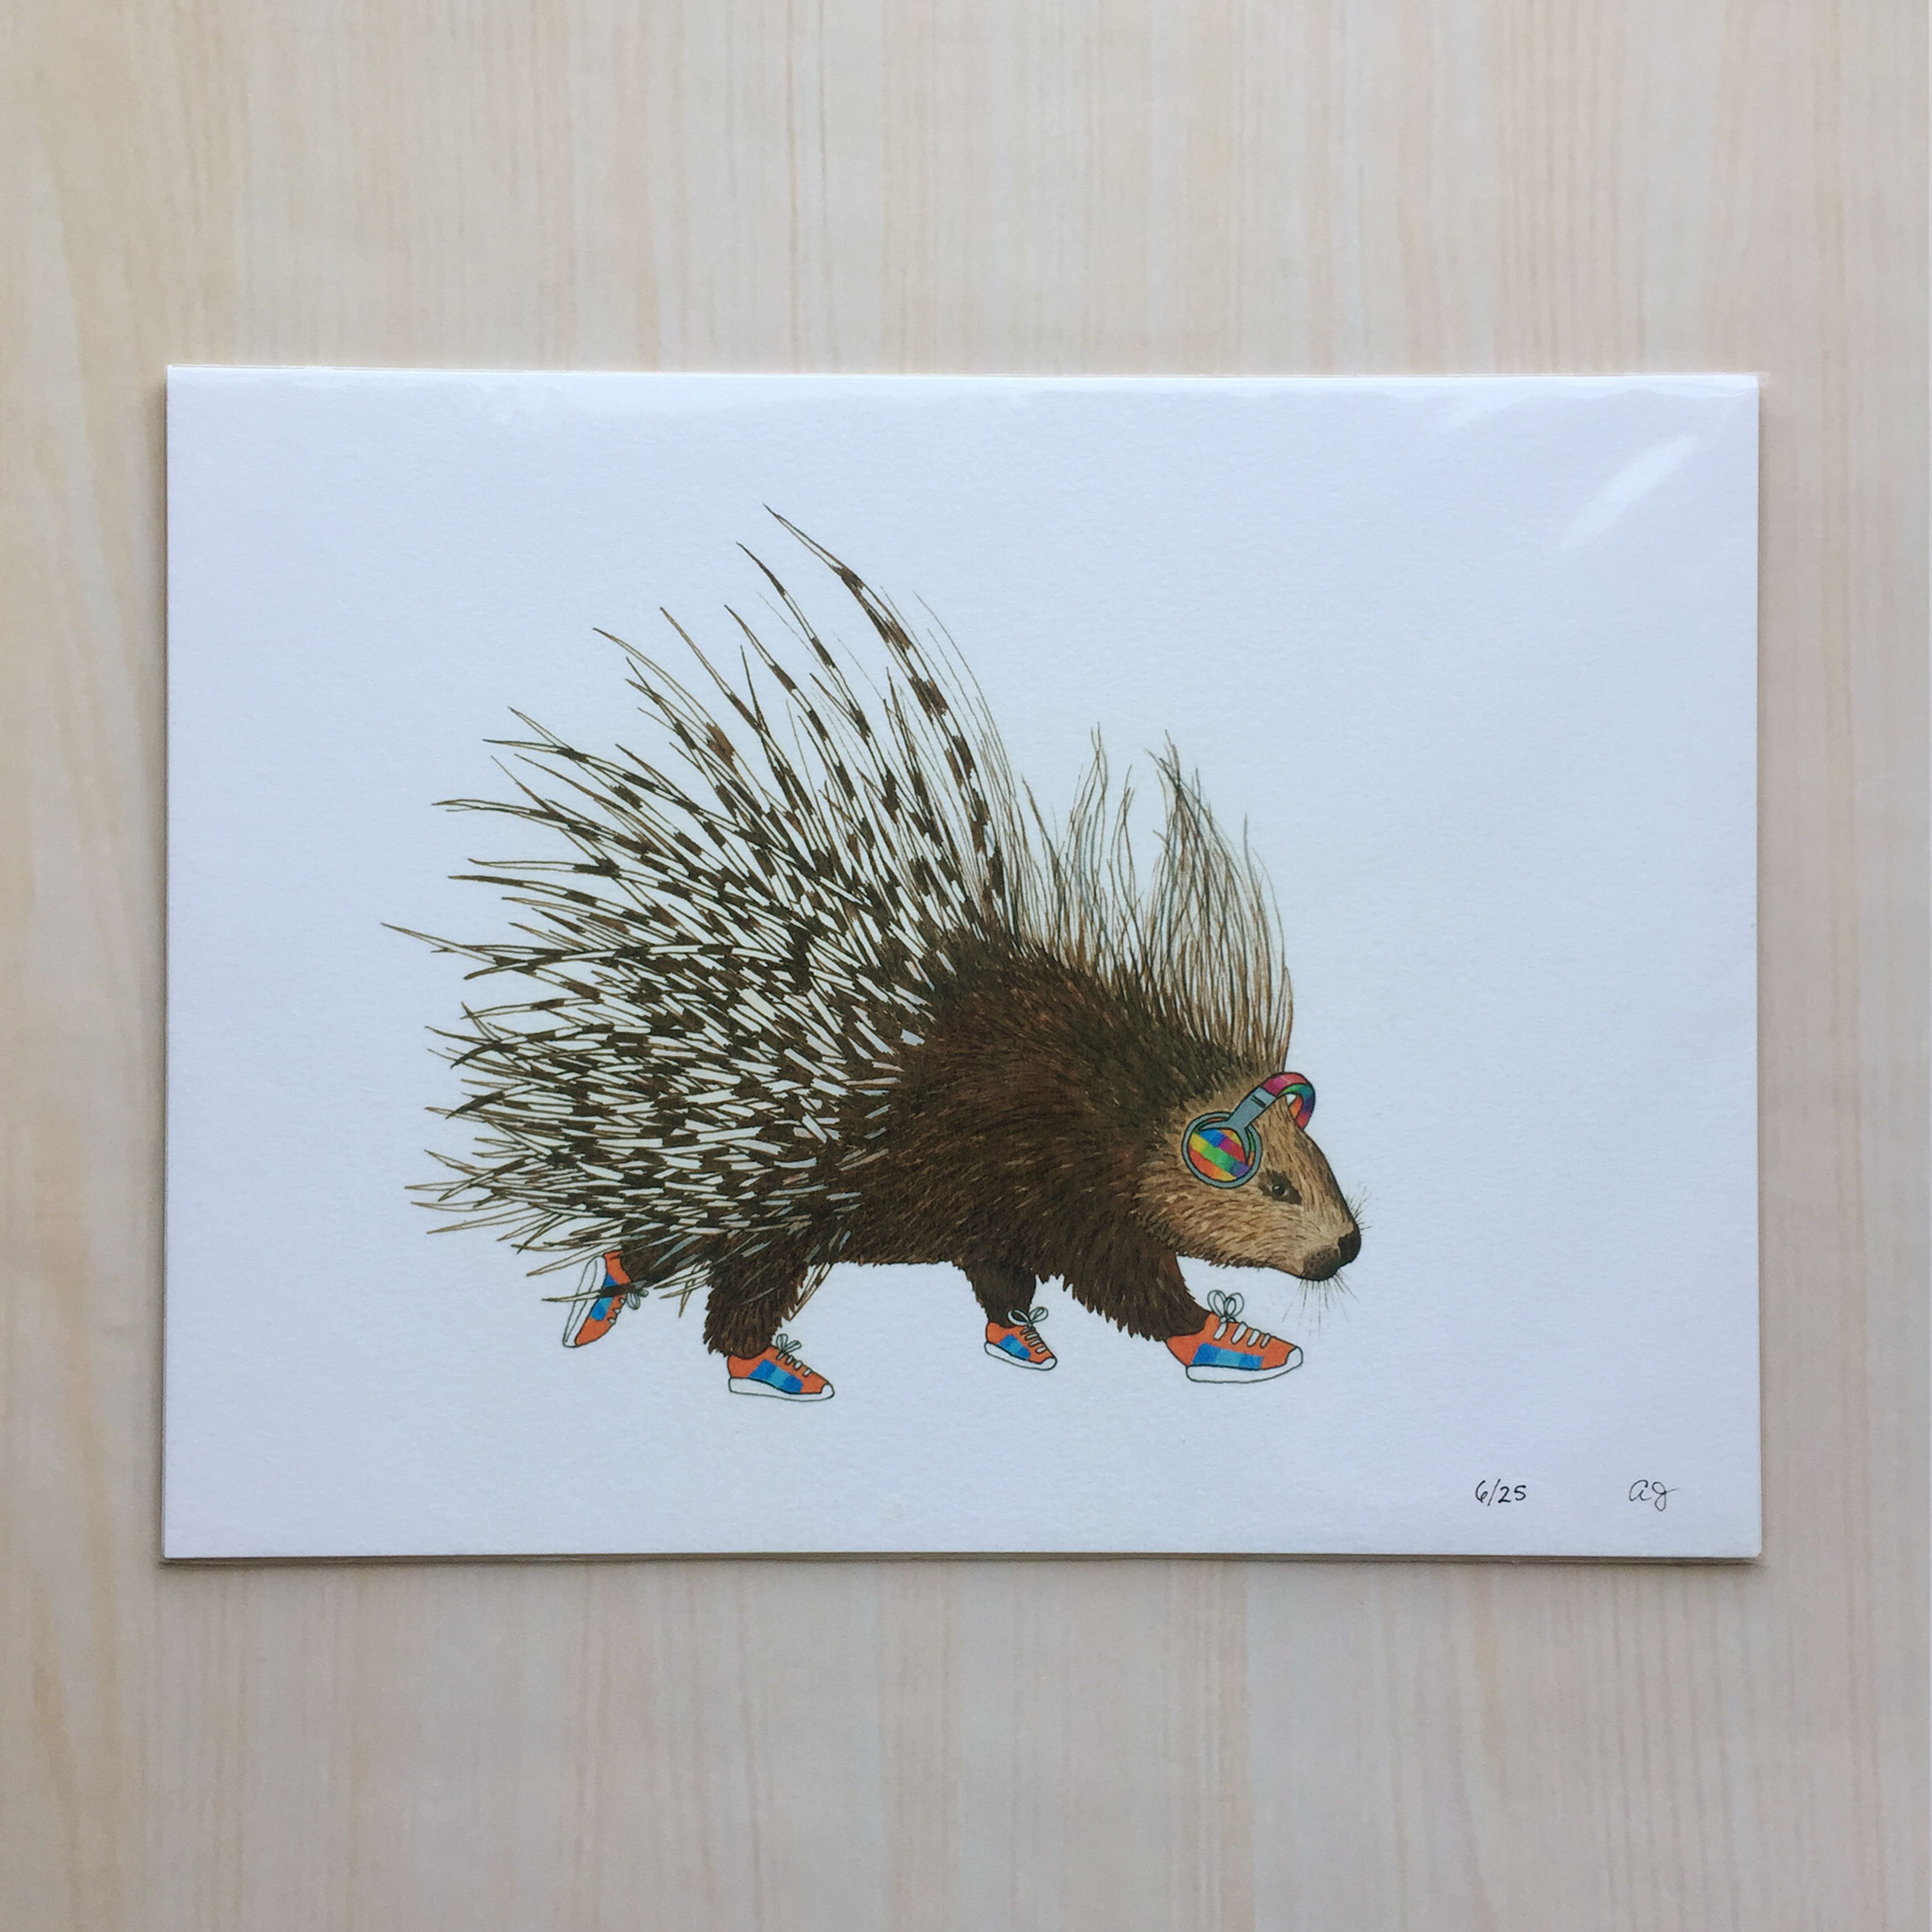 "Animals one the Run: Porky the Porcupine   Size: 9x12"" Printing: digital Paper: velvet Original Medium: gouache & ink Editions: limited to 25"